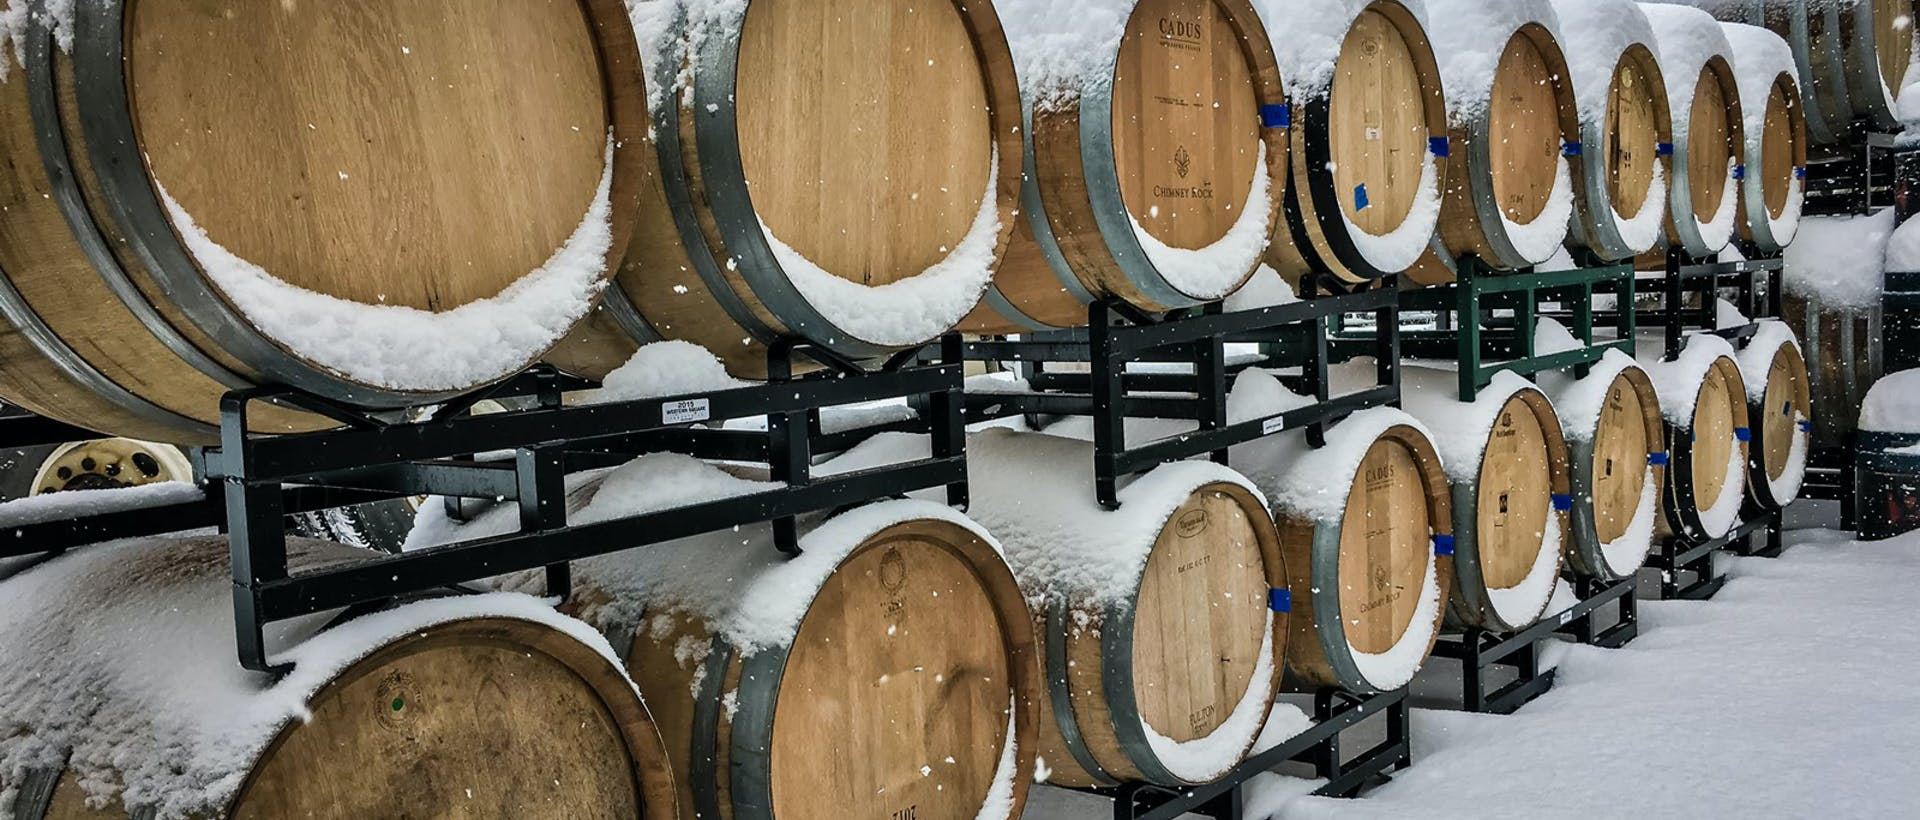 Barrels covered in snow